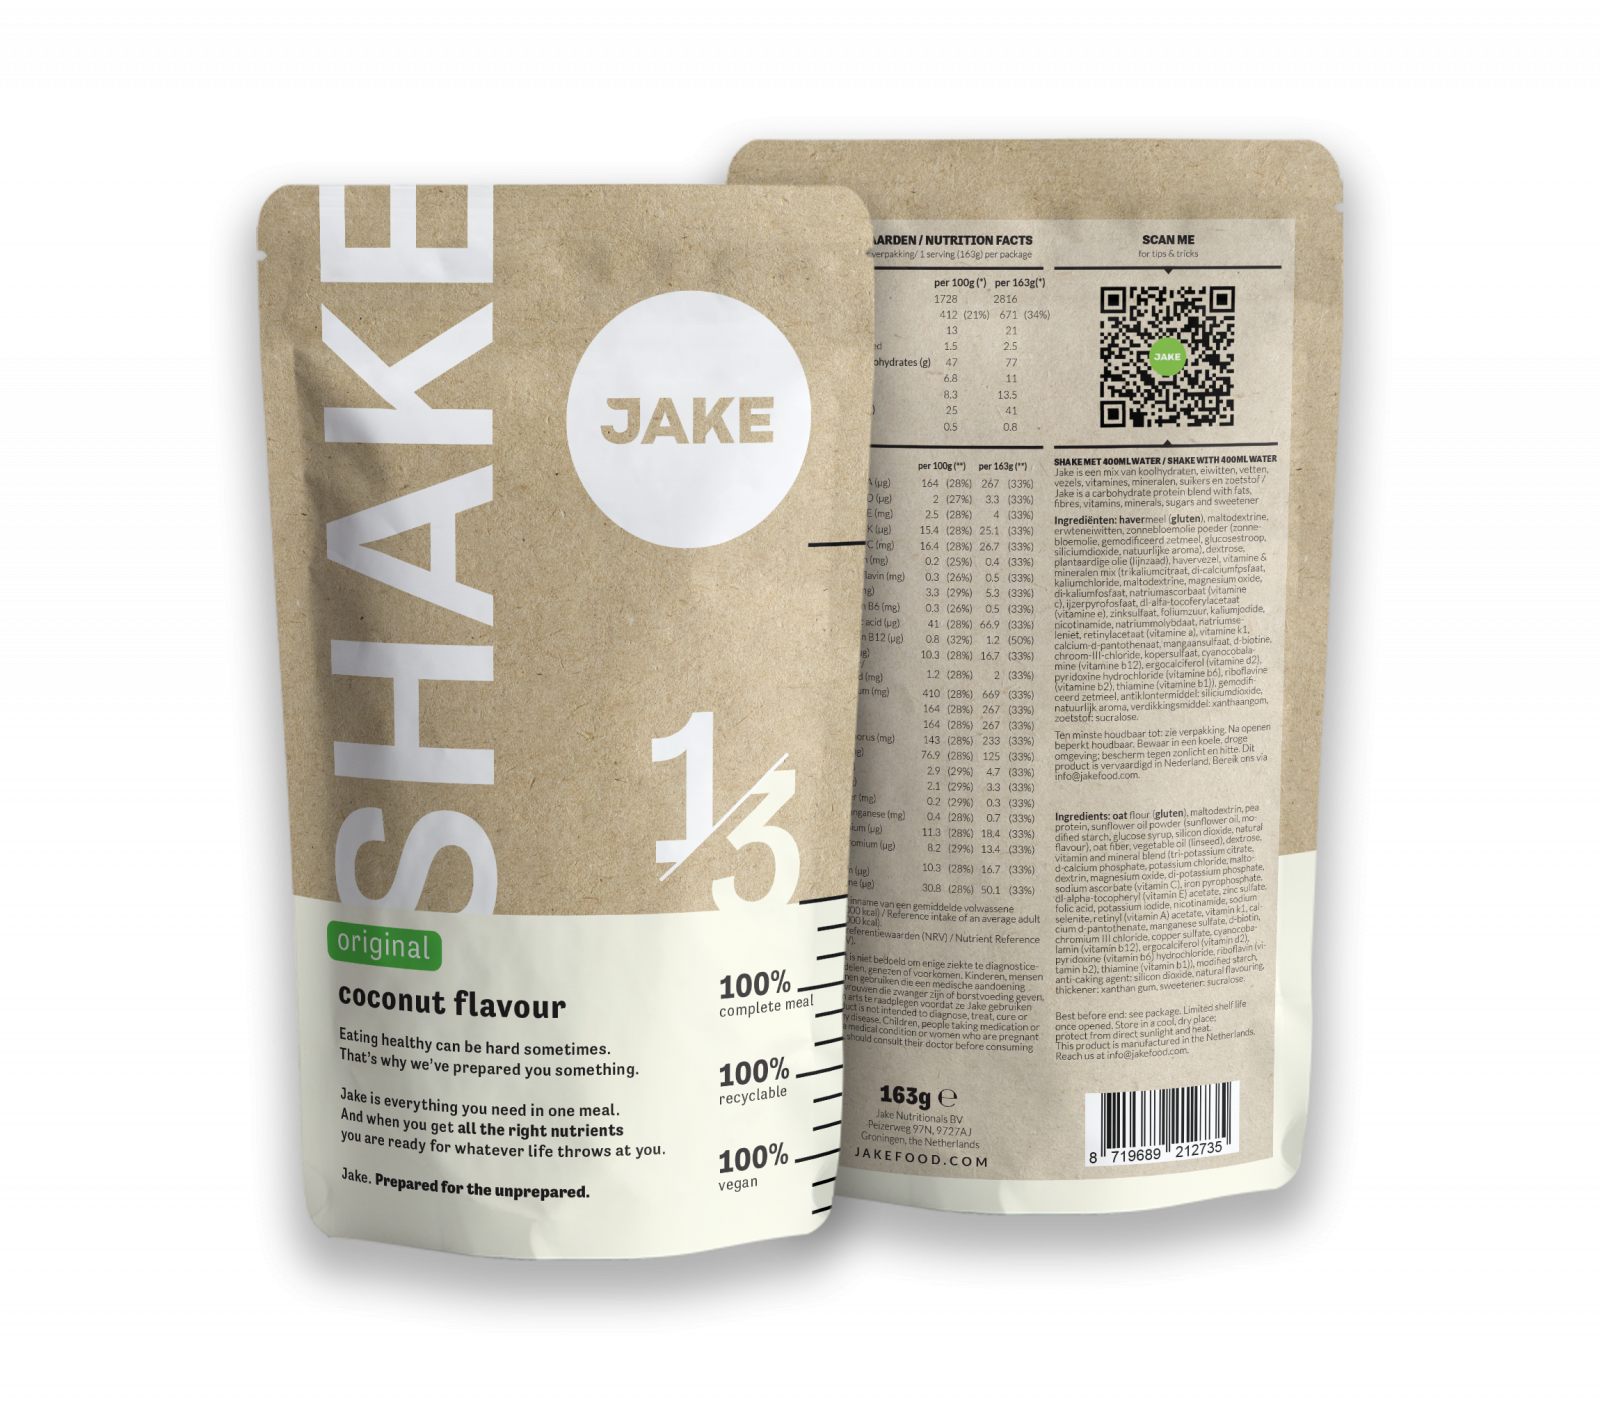 Front and back view of the Jake Original Shake Coconut